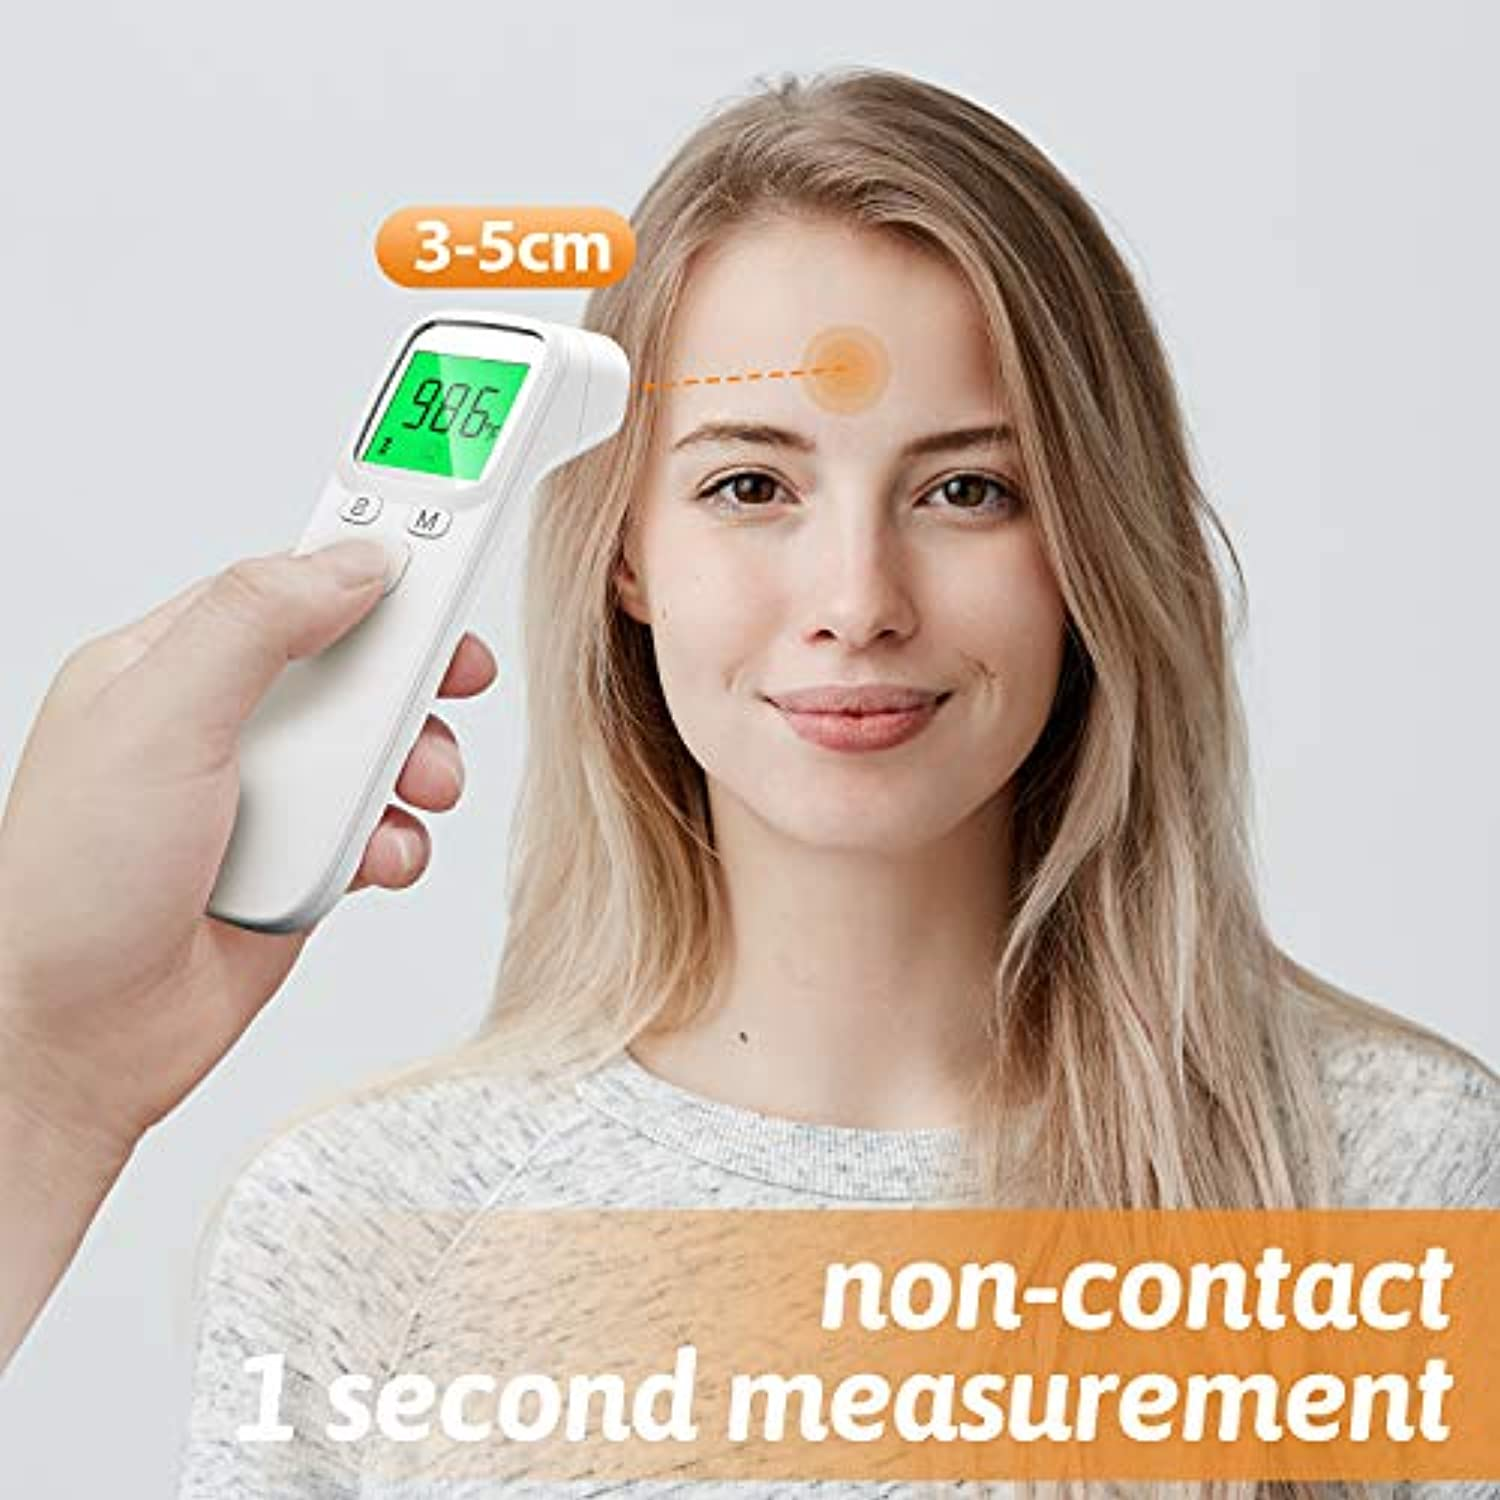 Classier: Buy FACEIL Thermometer for Fever, Non-Contact Forehead Thermometer with Object Mode Function